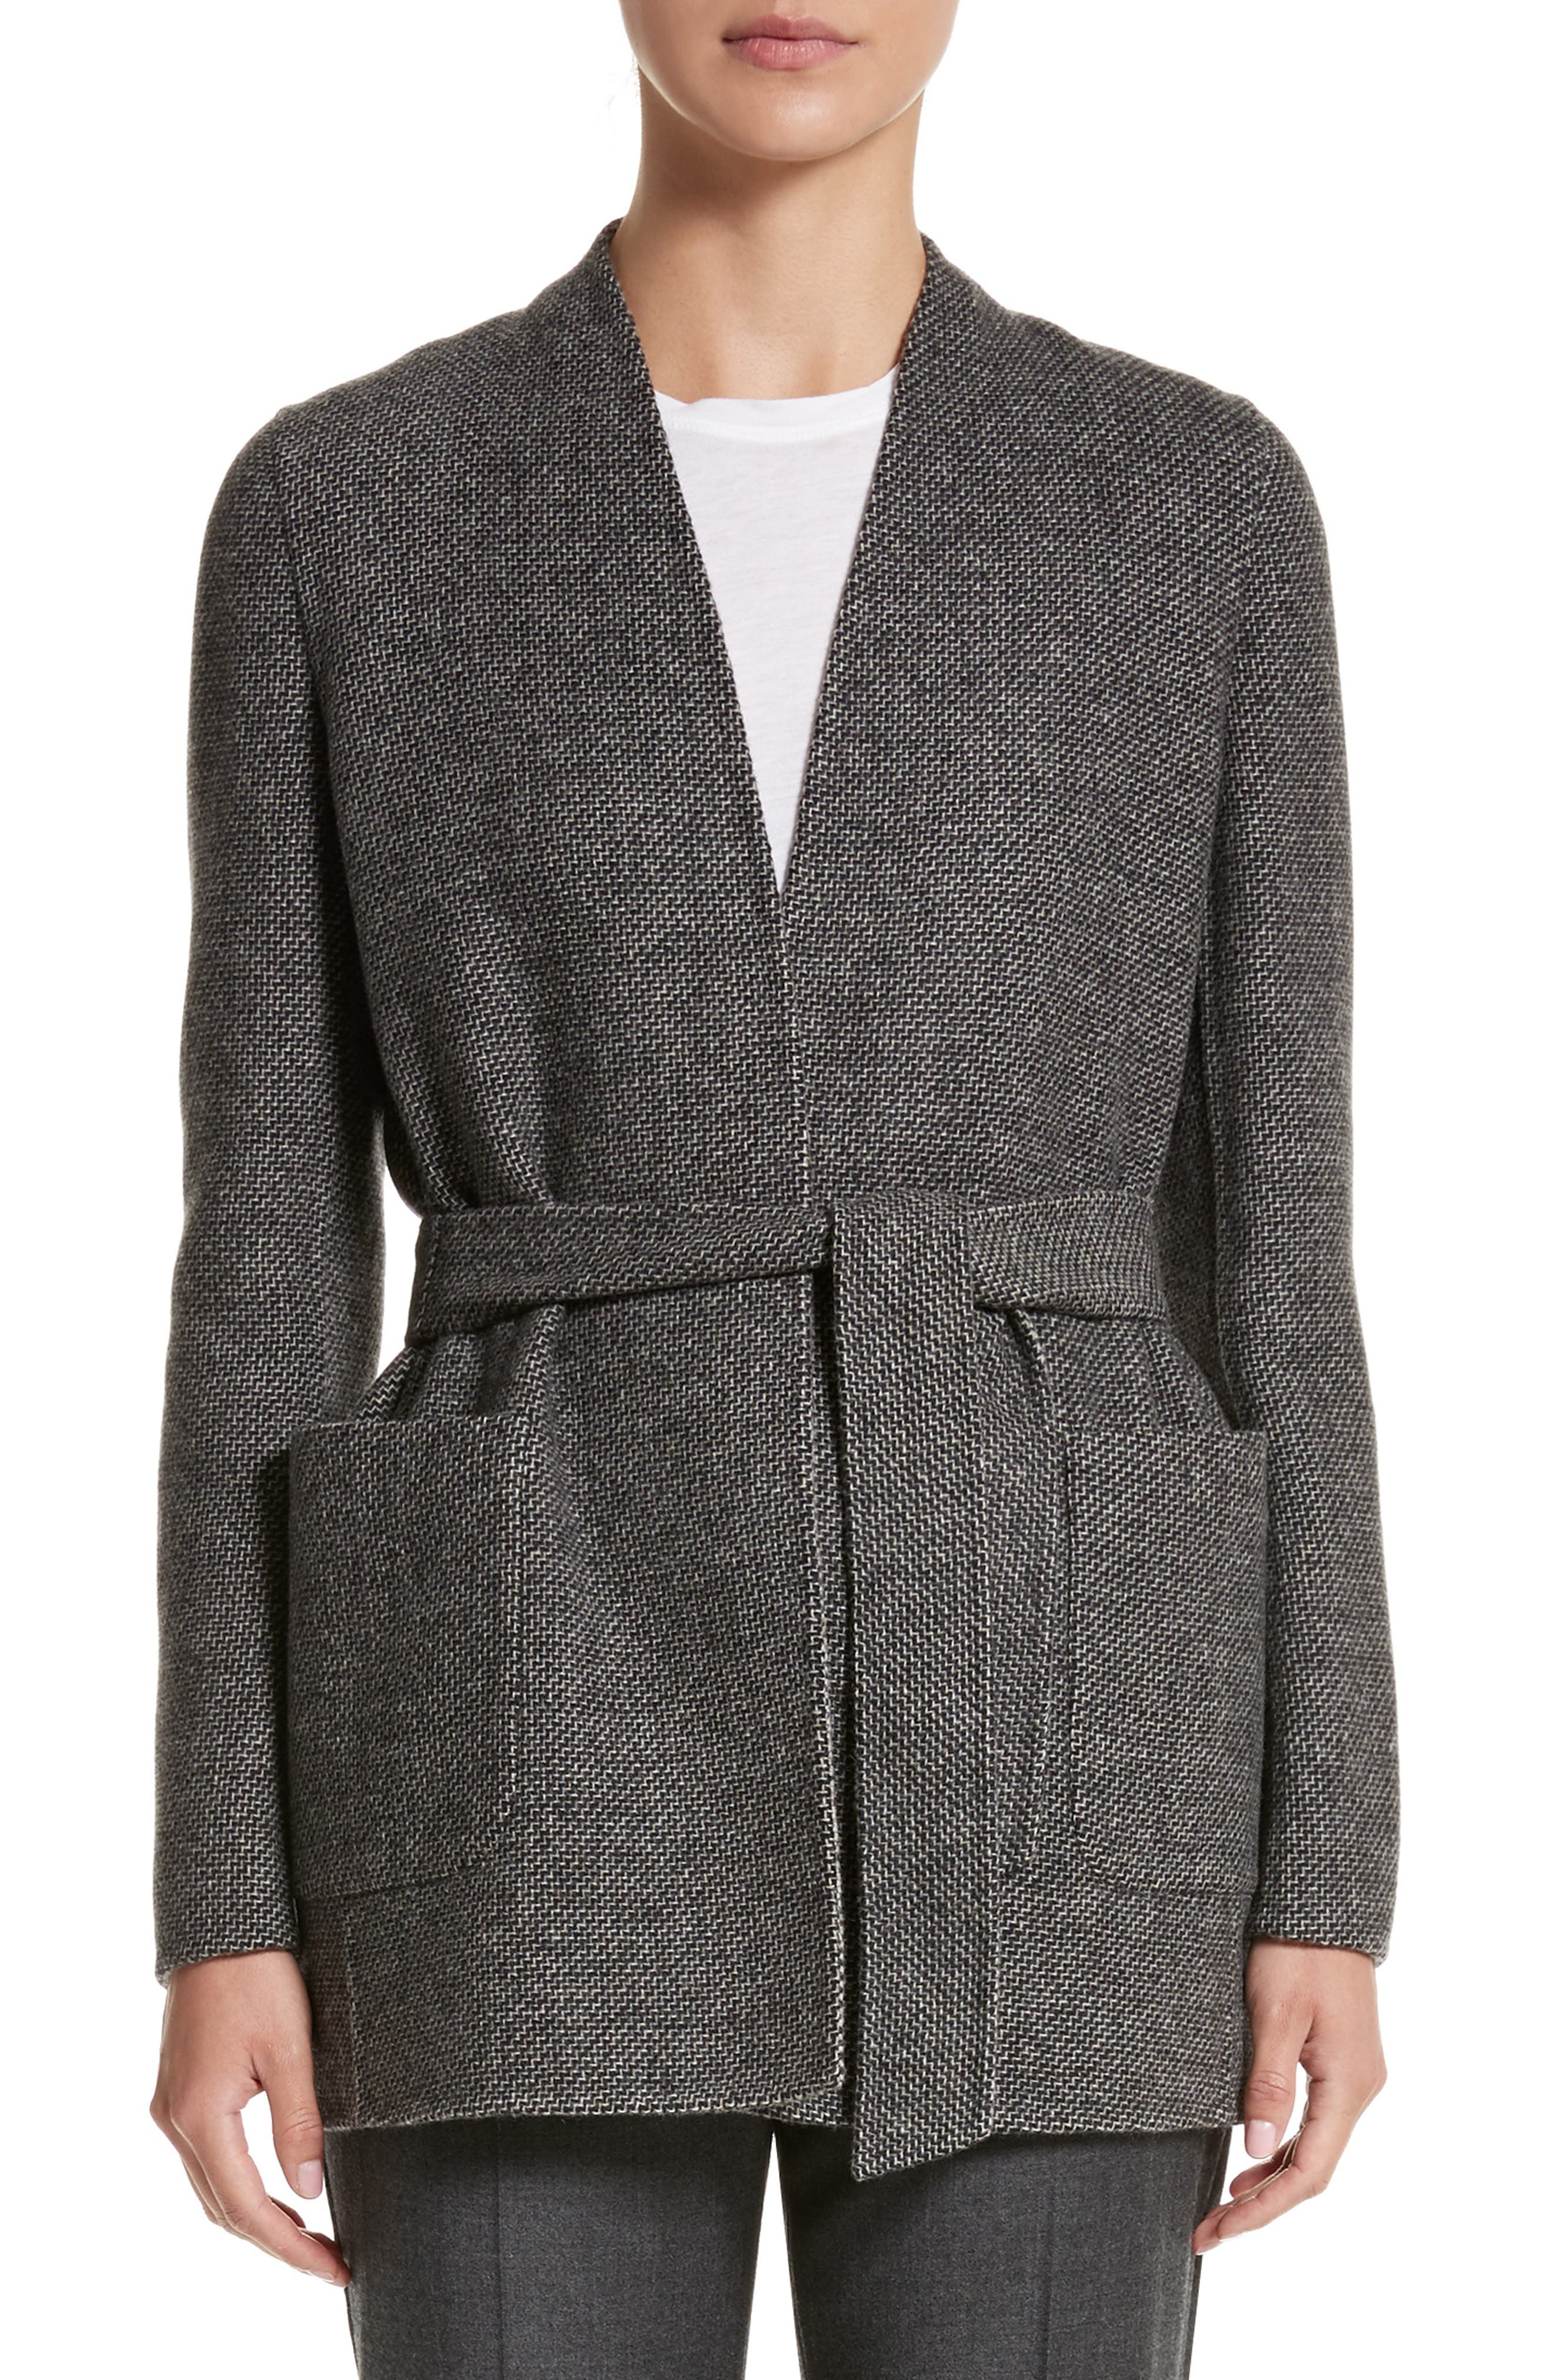 Max Mara Denver Wool & Cashmere Jacket